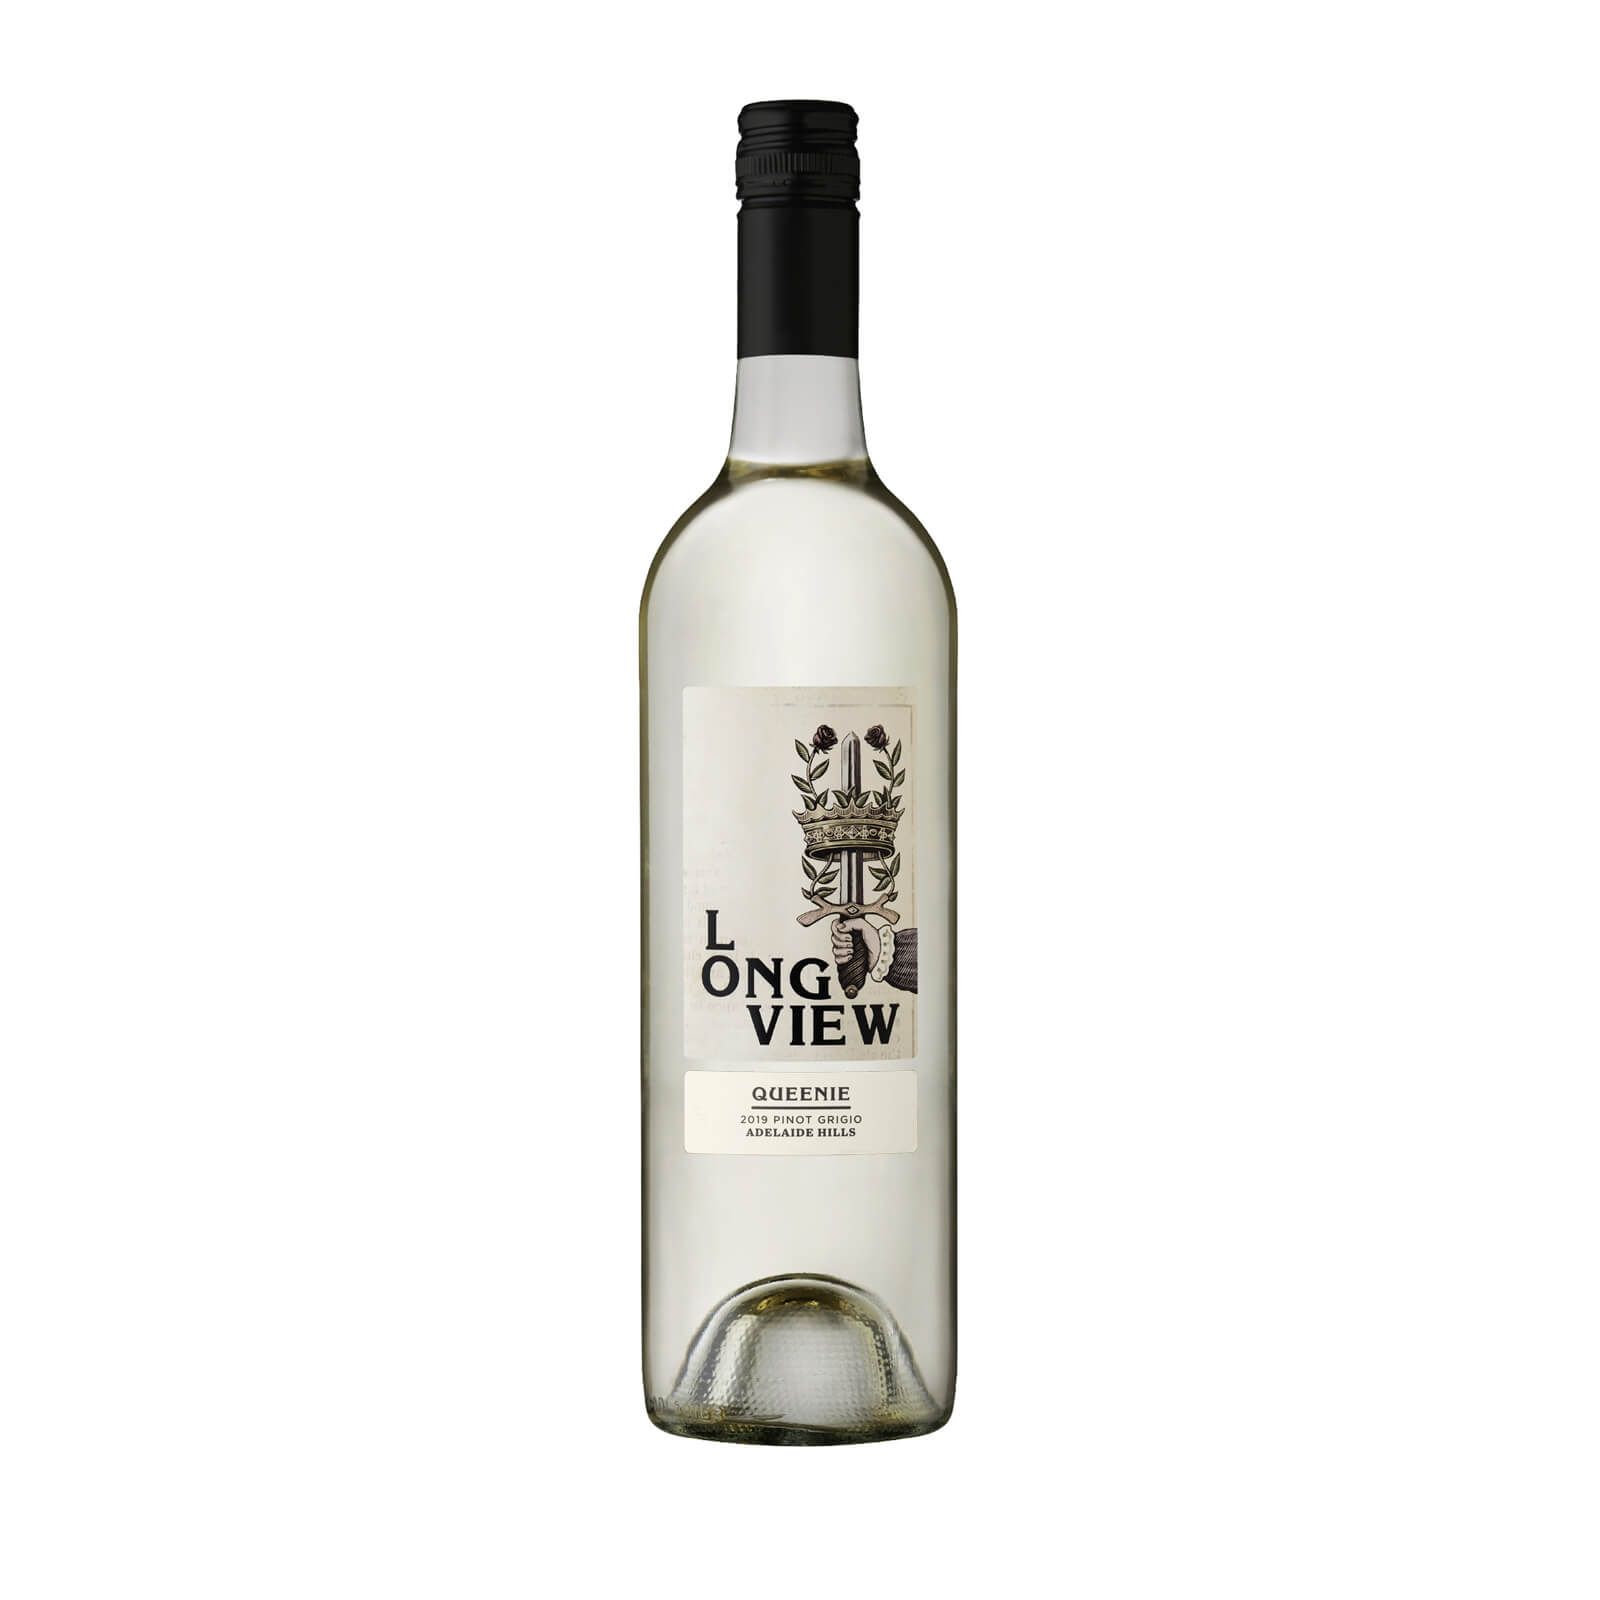 products-Longview-Queenie-Pinot-Grigio-a